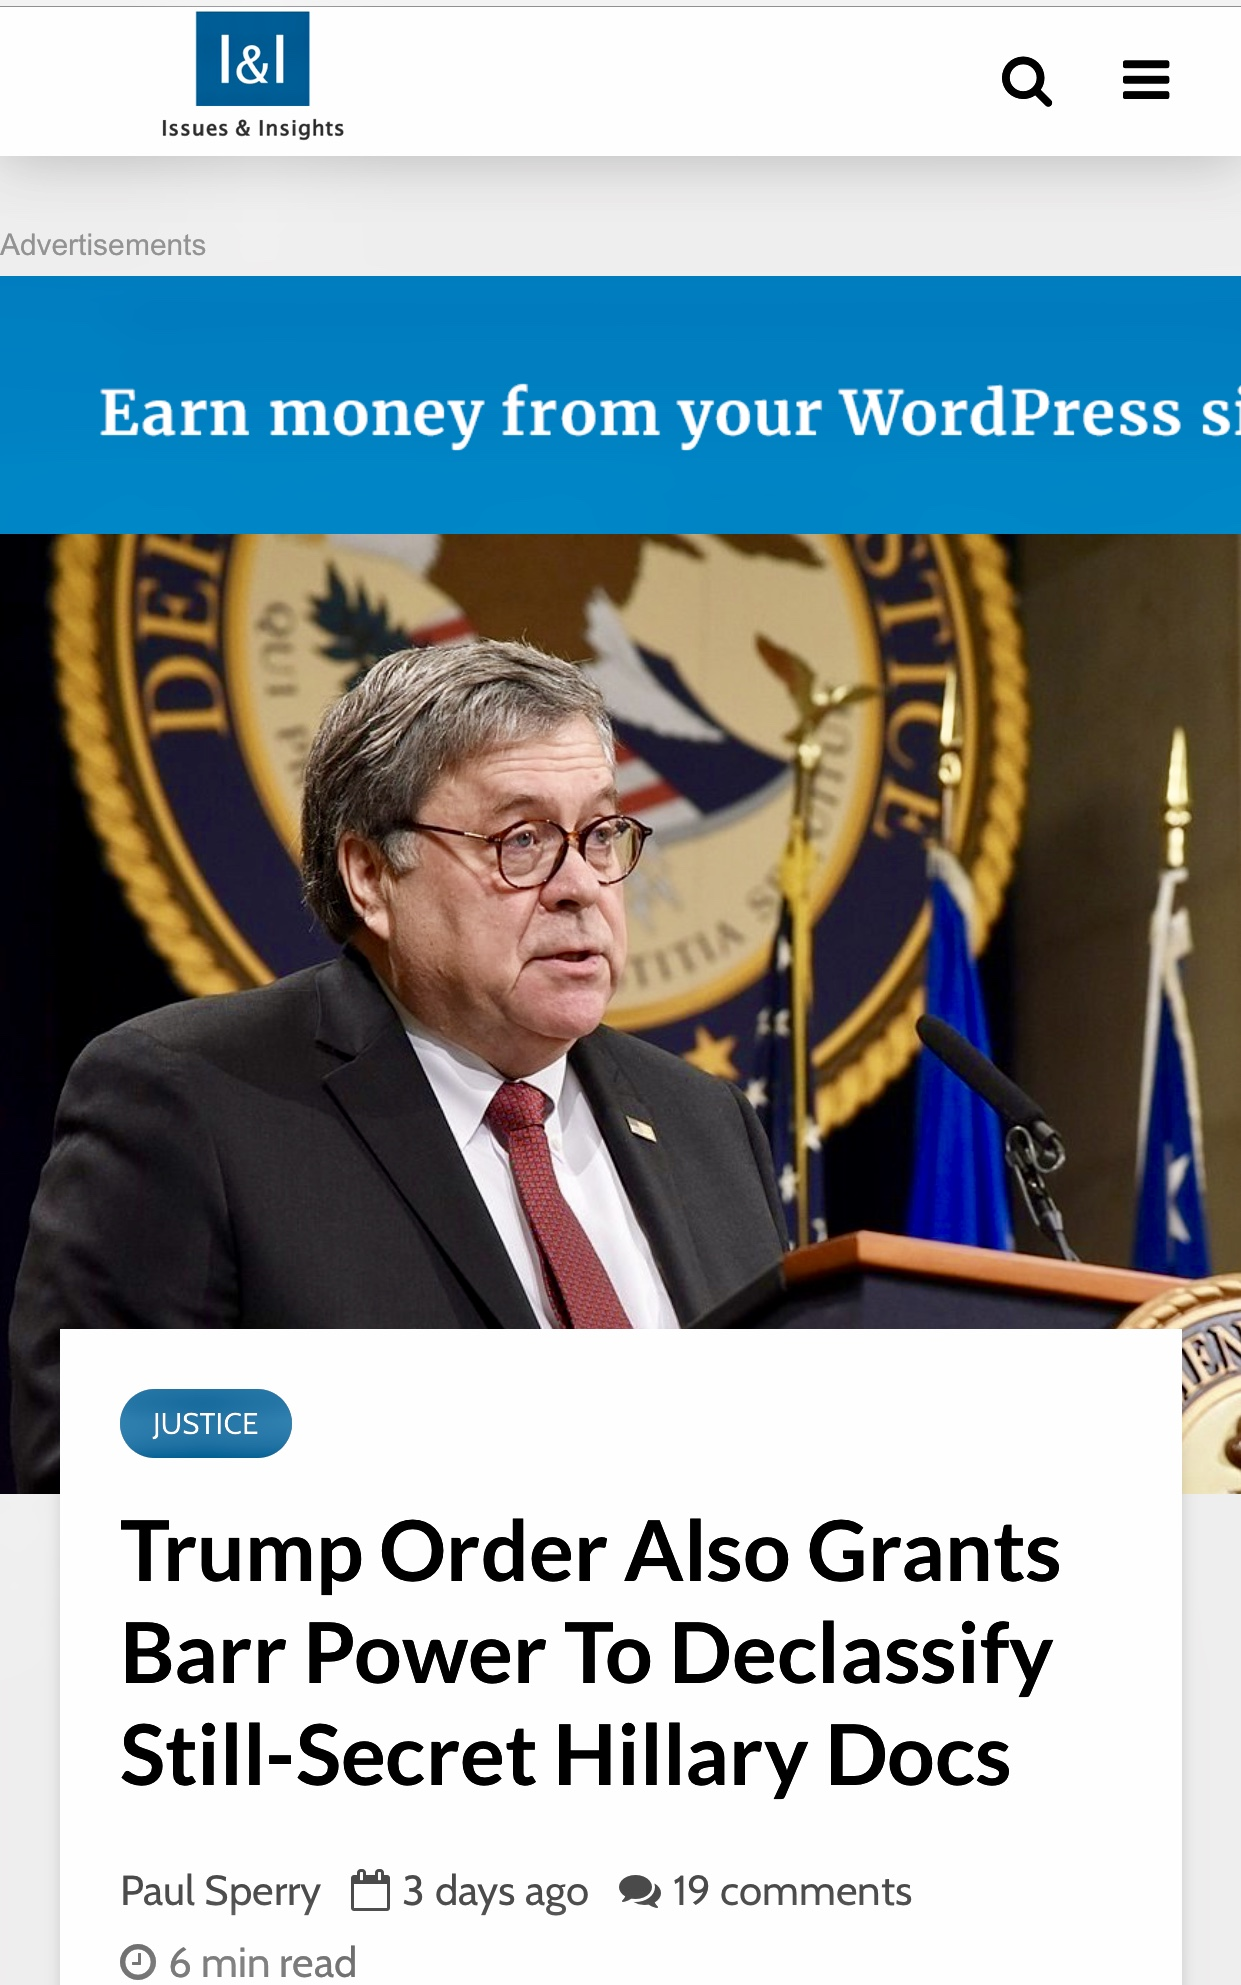 President Trump Order Also Grants Barr Power To Declassify Still-Secret Hillary Docs – Issues & Insights